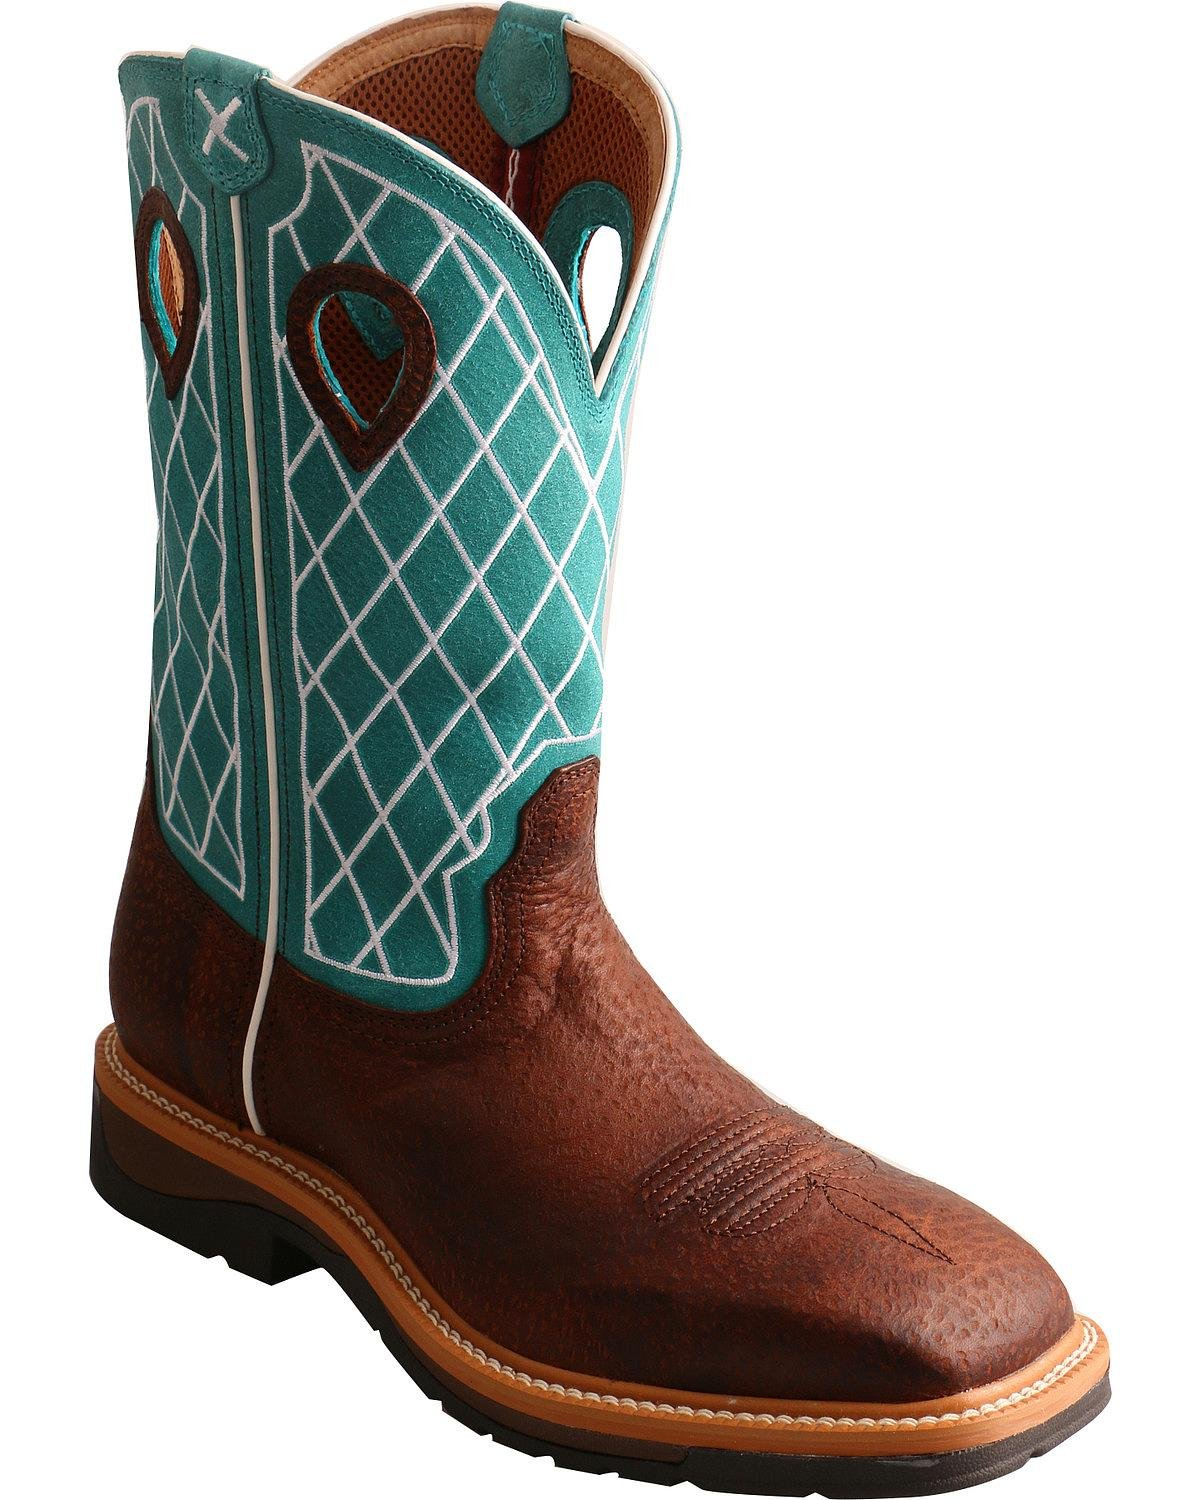 Twisted X メンズ B074BQFPBD 9.5 2E US|Brown Turquoise Brown Turquoise 9.5 2E US